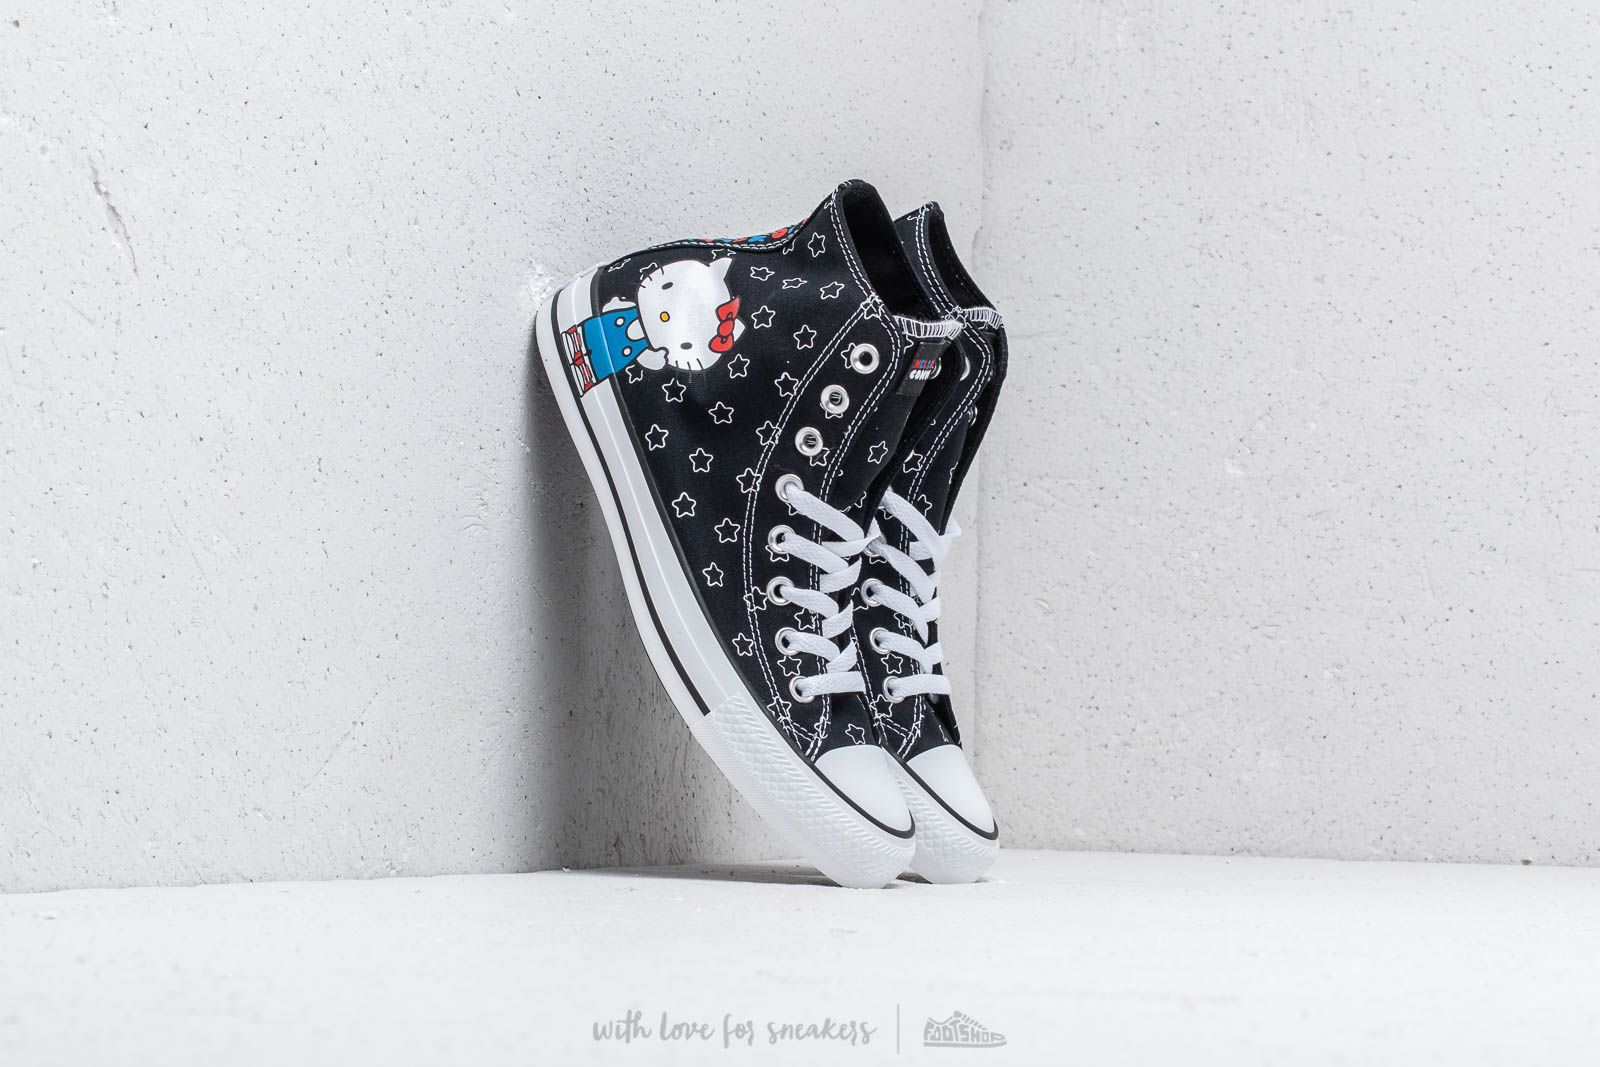 c4b56d24b12a Converse x Hello Kitty Chuck Taylor All Star Hi Black  White  Directoire  Blue at